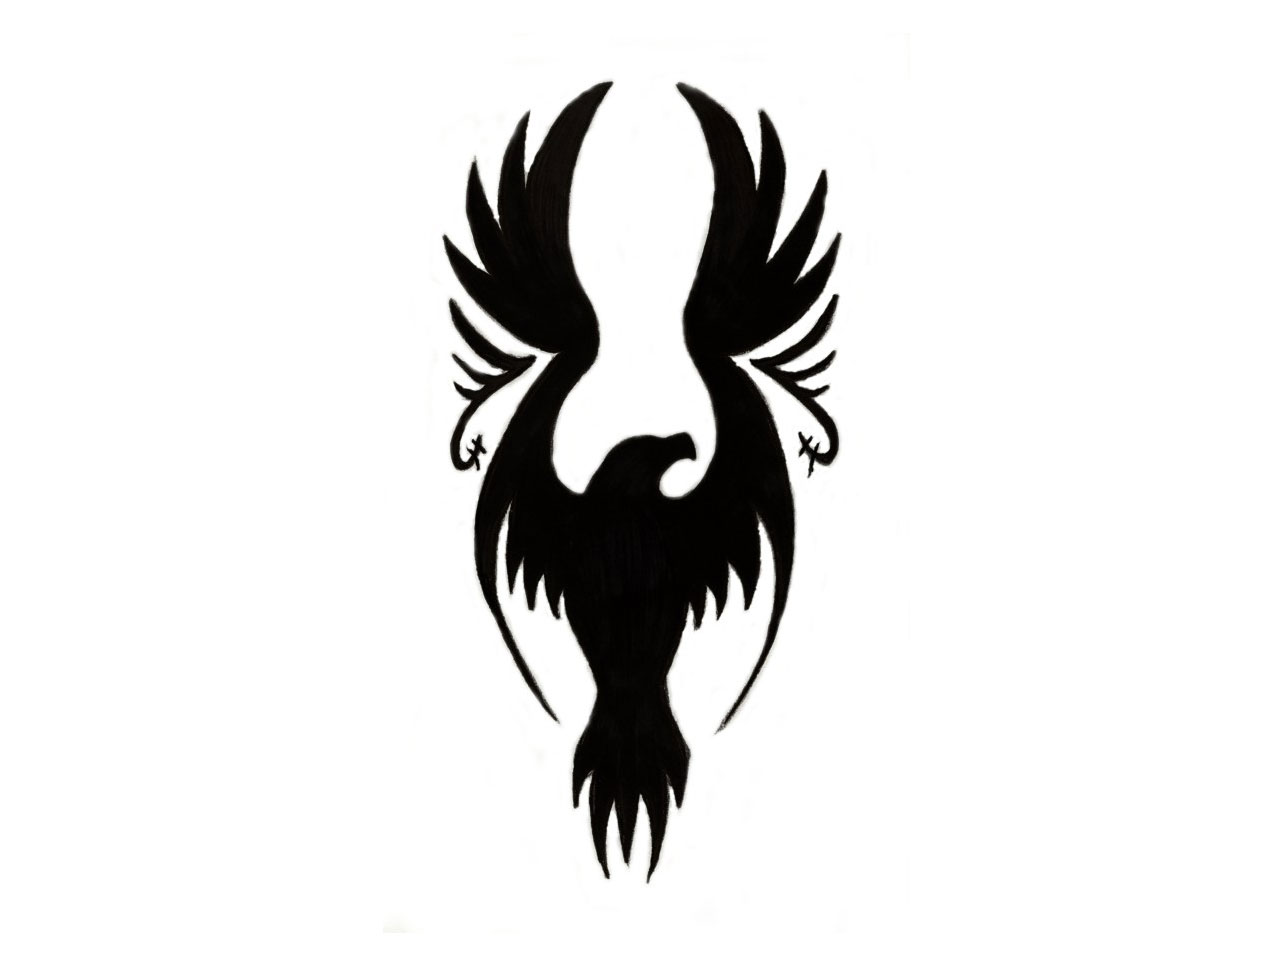 Eagle Wings Design | Clipart Panda - Free Clipart Images